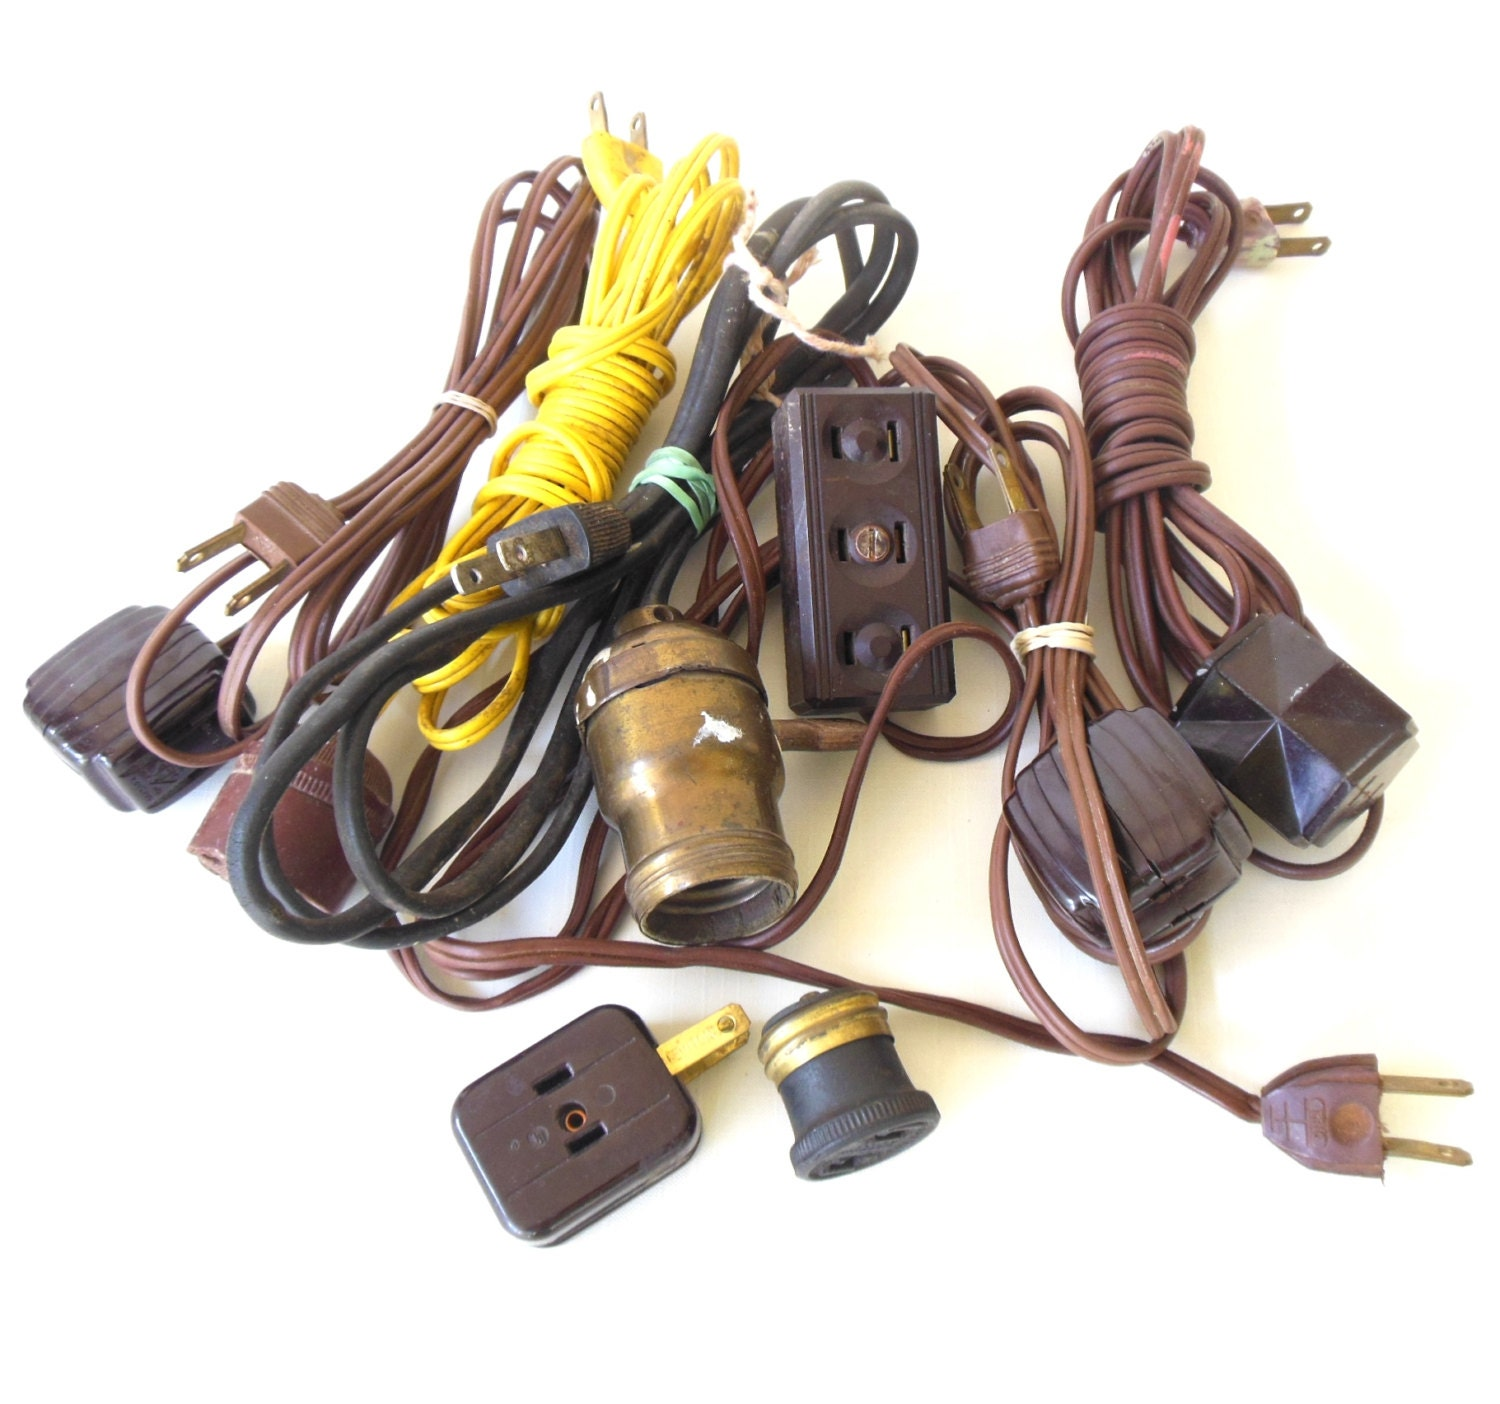 Extension Cords Vintage Electrical Outlet By Lauraslastditch